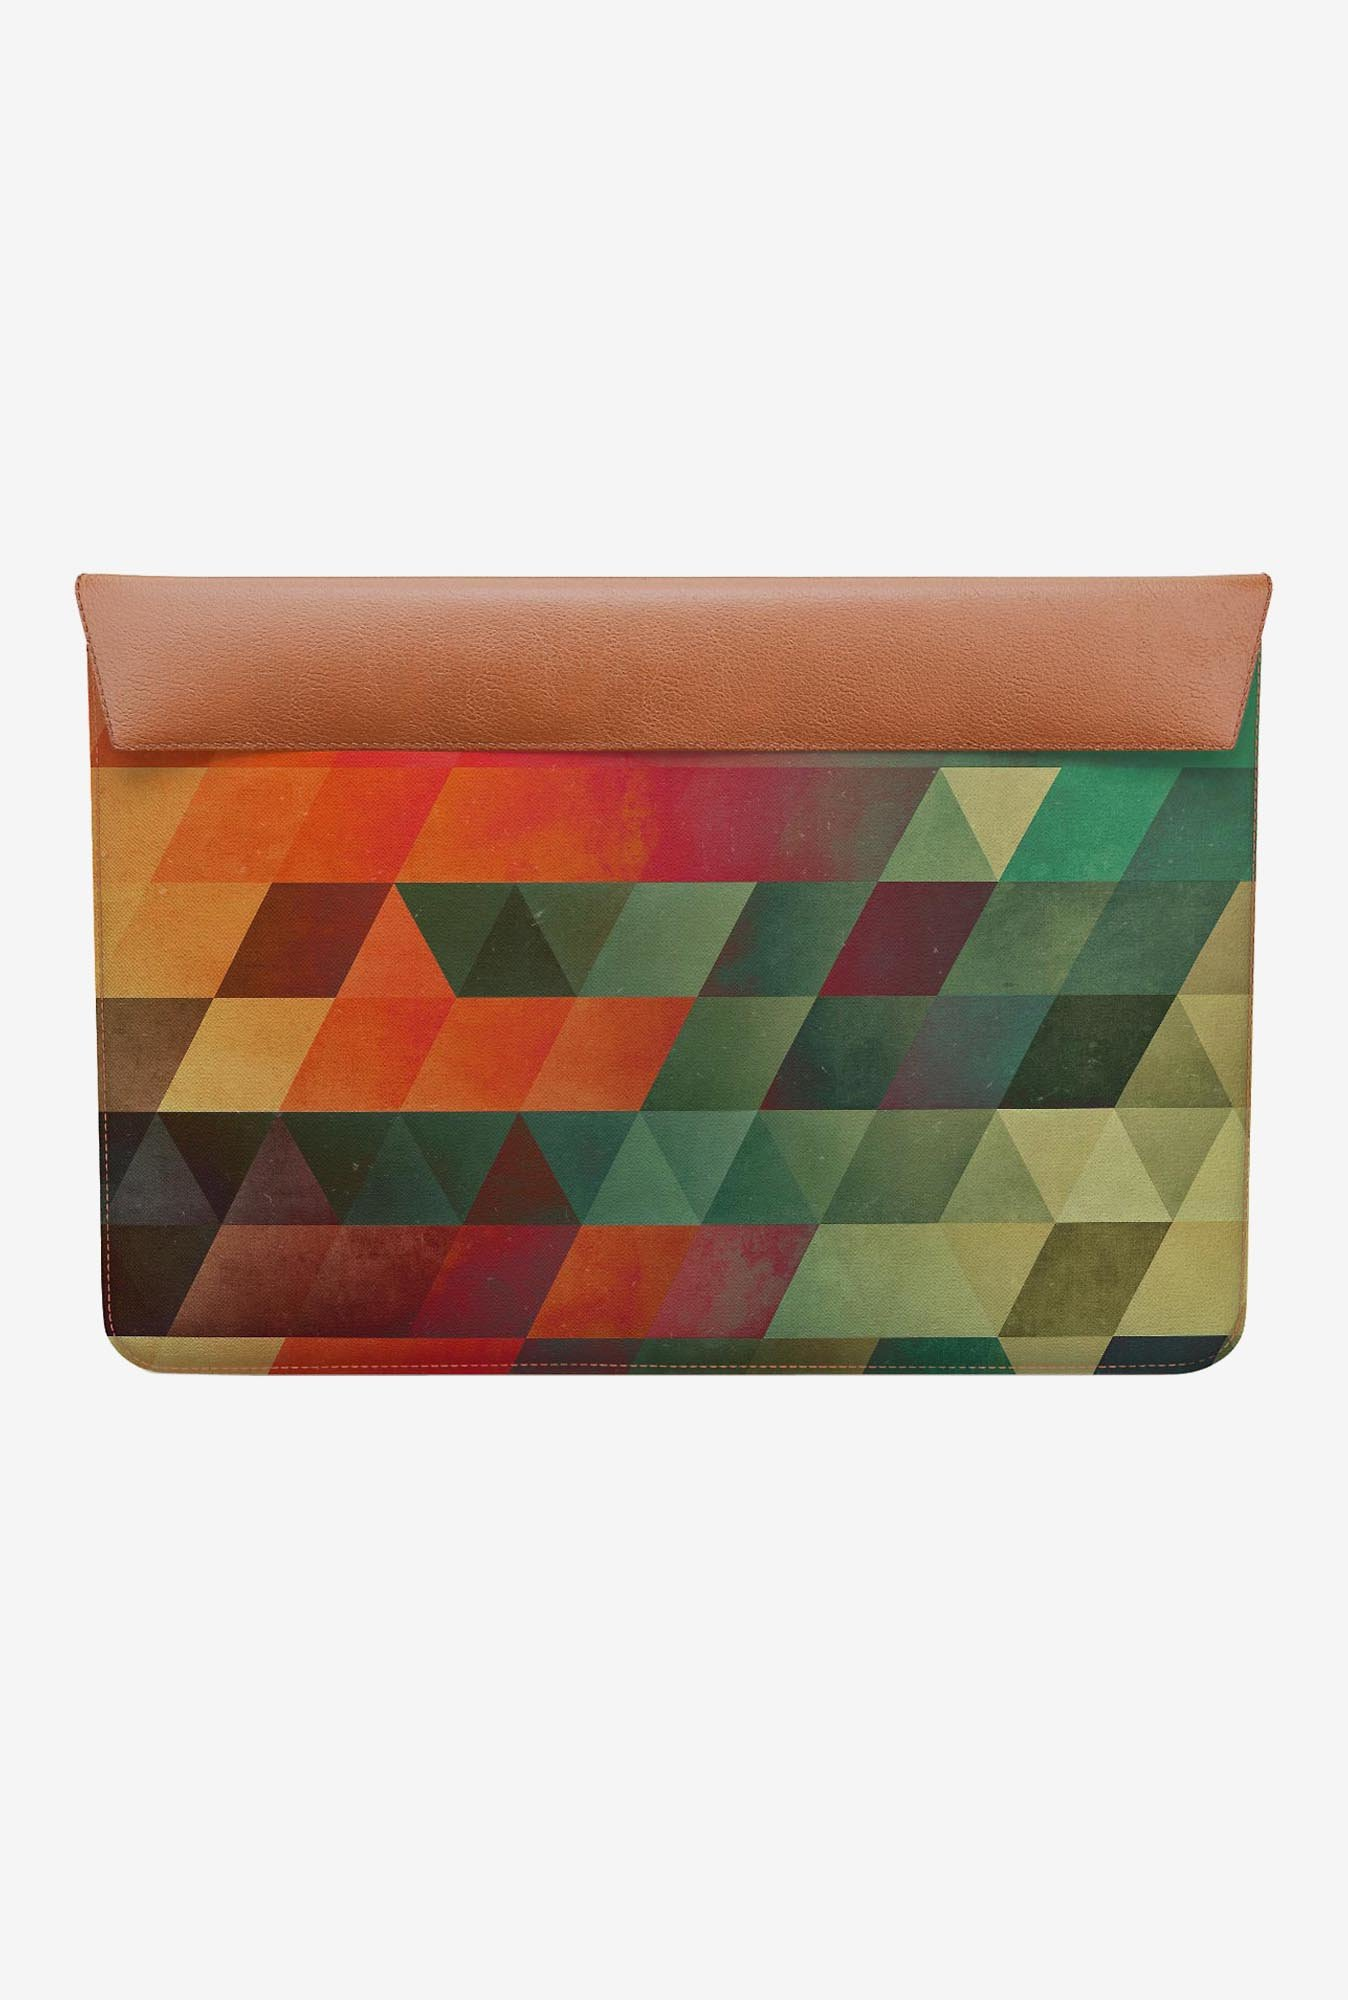 DailyObjects Yrrynngg Zkyy MacBook Pro 15 Envelope Sleeve